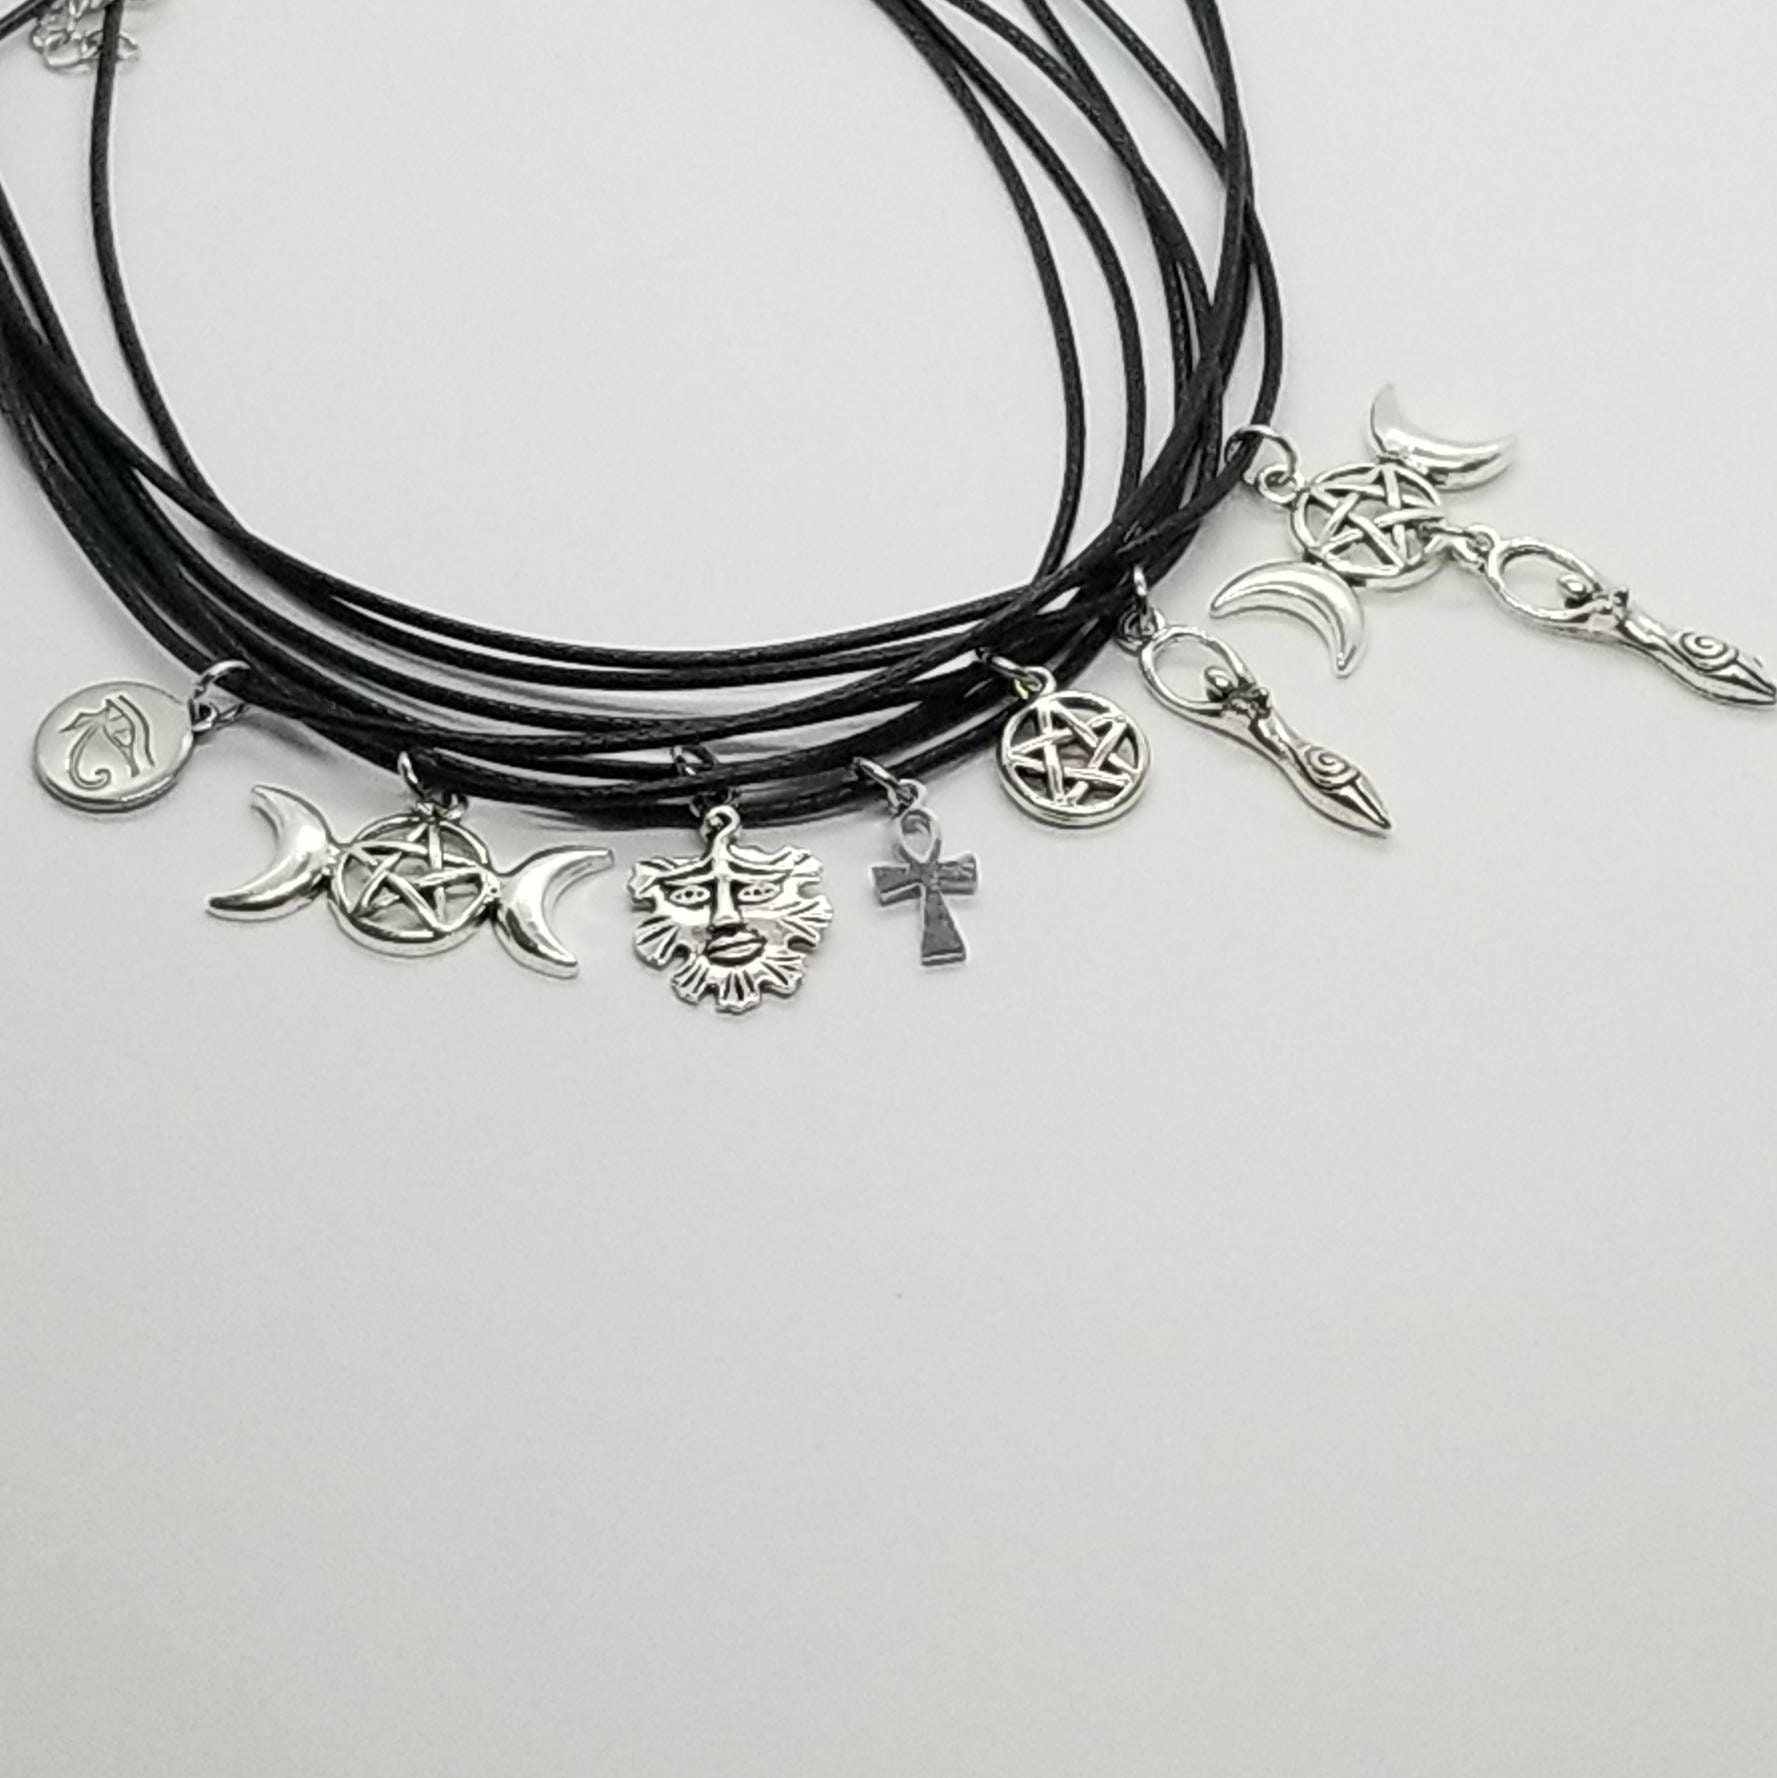 Wiccan Necklace Pagan Necklace Wicca Jewelry Pagan Jewelry